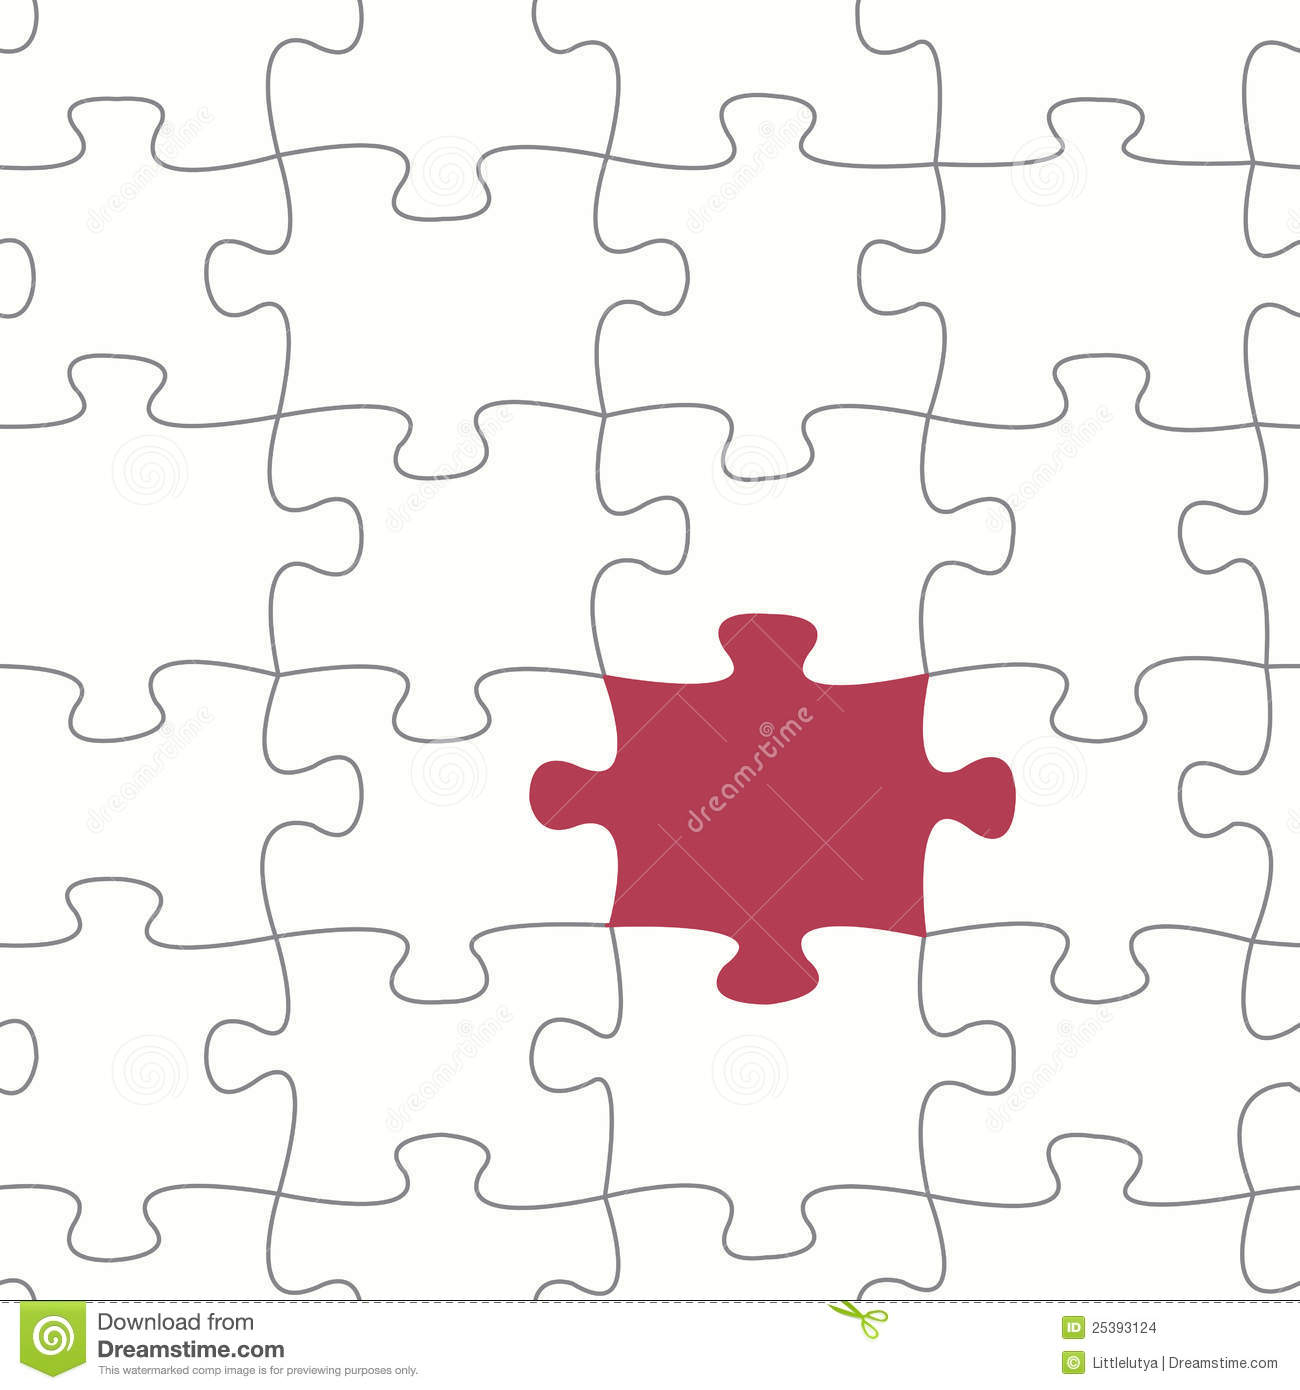 Seamless Vector Puzzle Pattern Stock Images - Image: 25393124